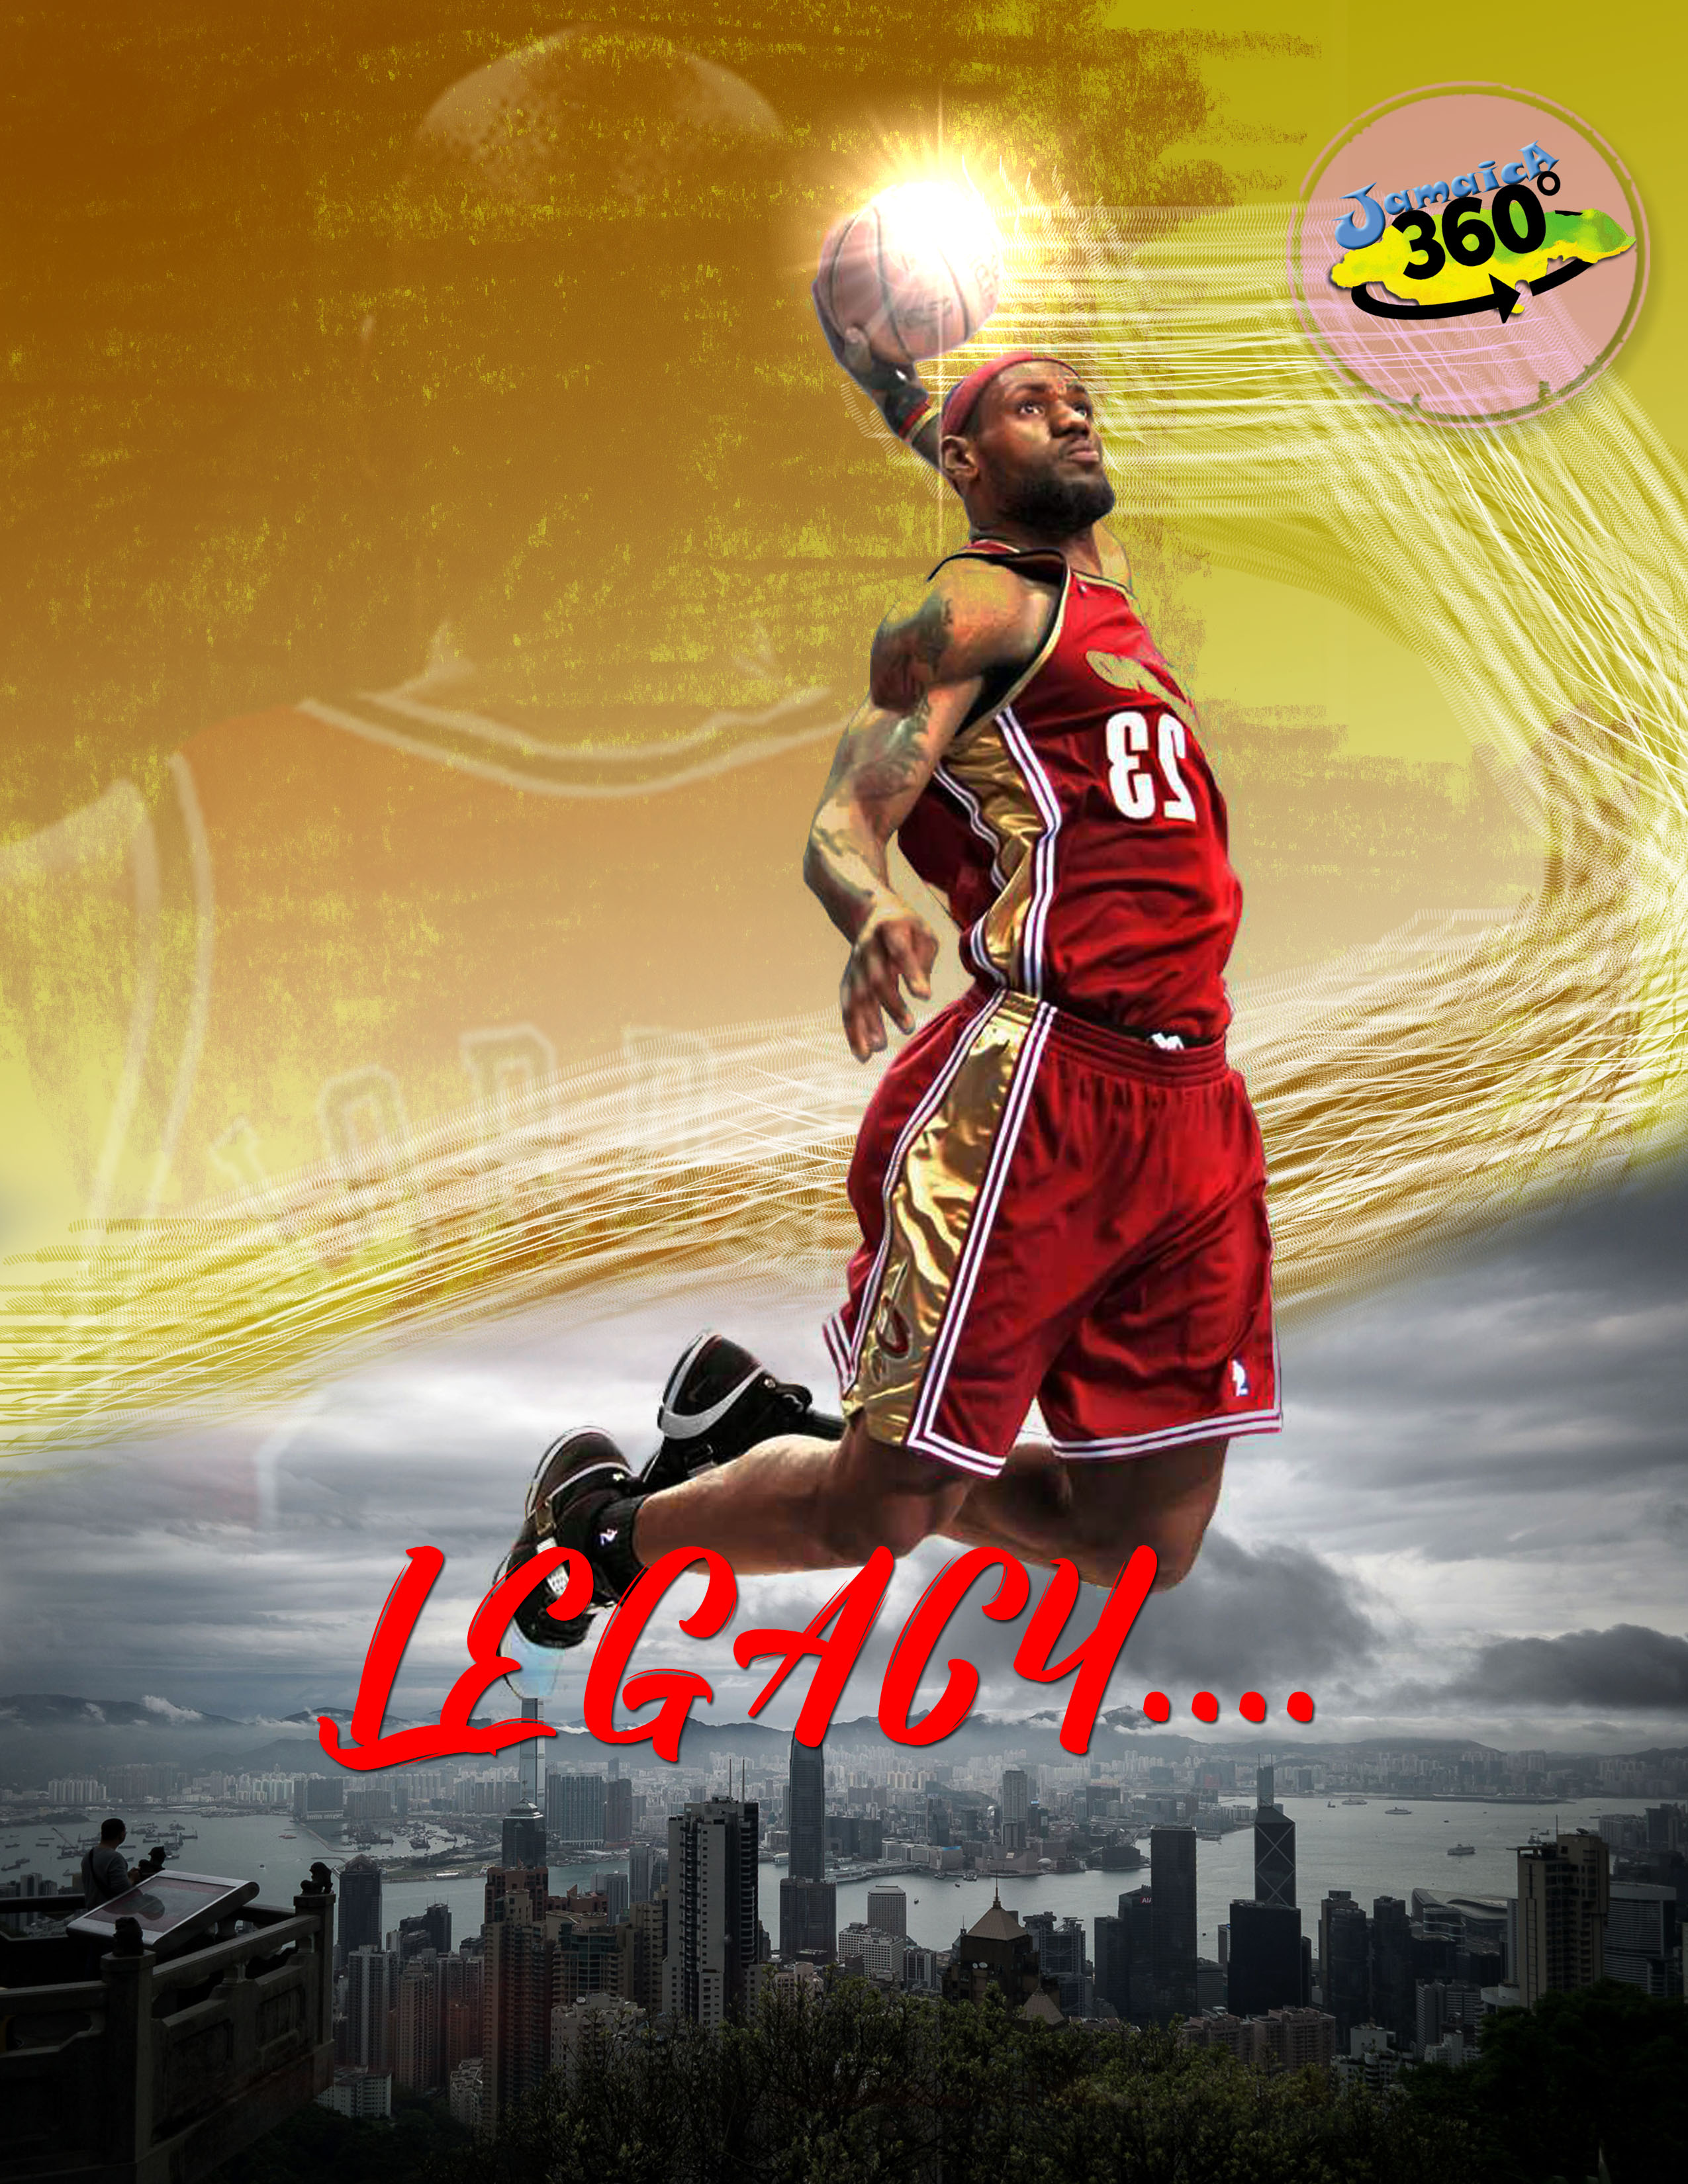 Lebron Wallpaper and poster